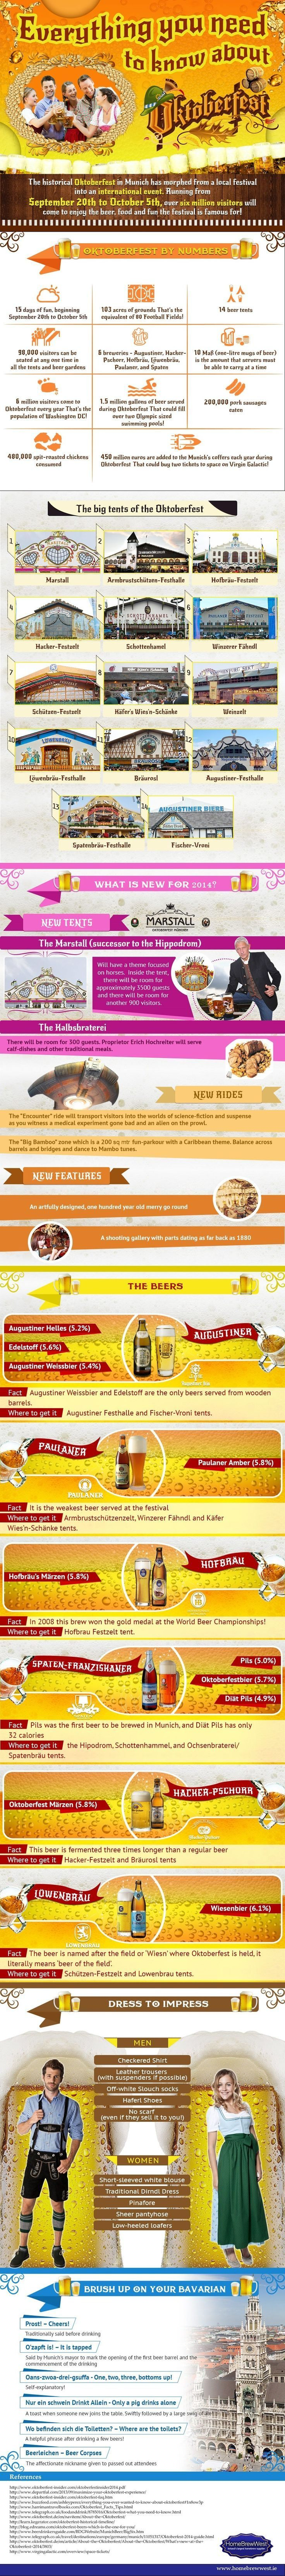 everything you need to know about oktoberfest infographic